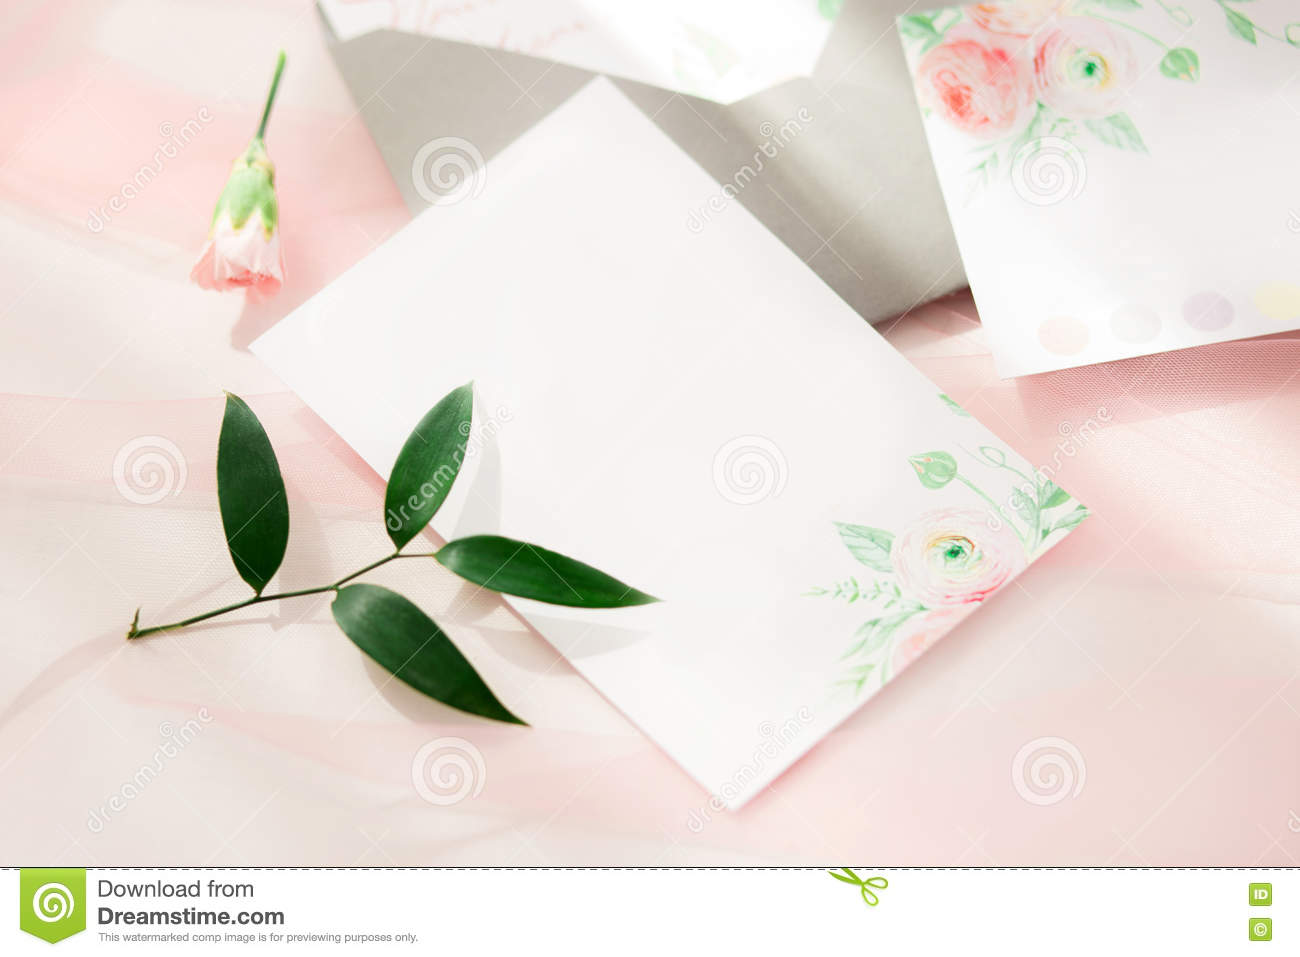 Workspace Wedding Invitation Cards Royalty Free Stock